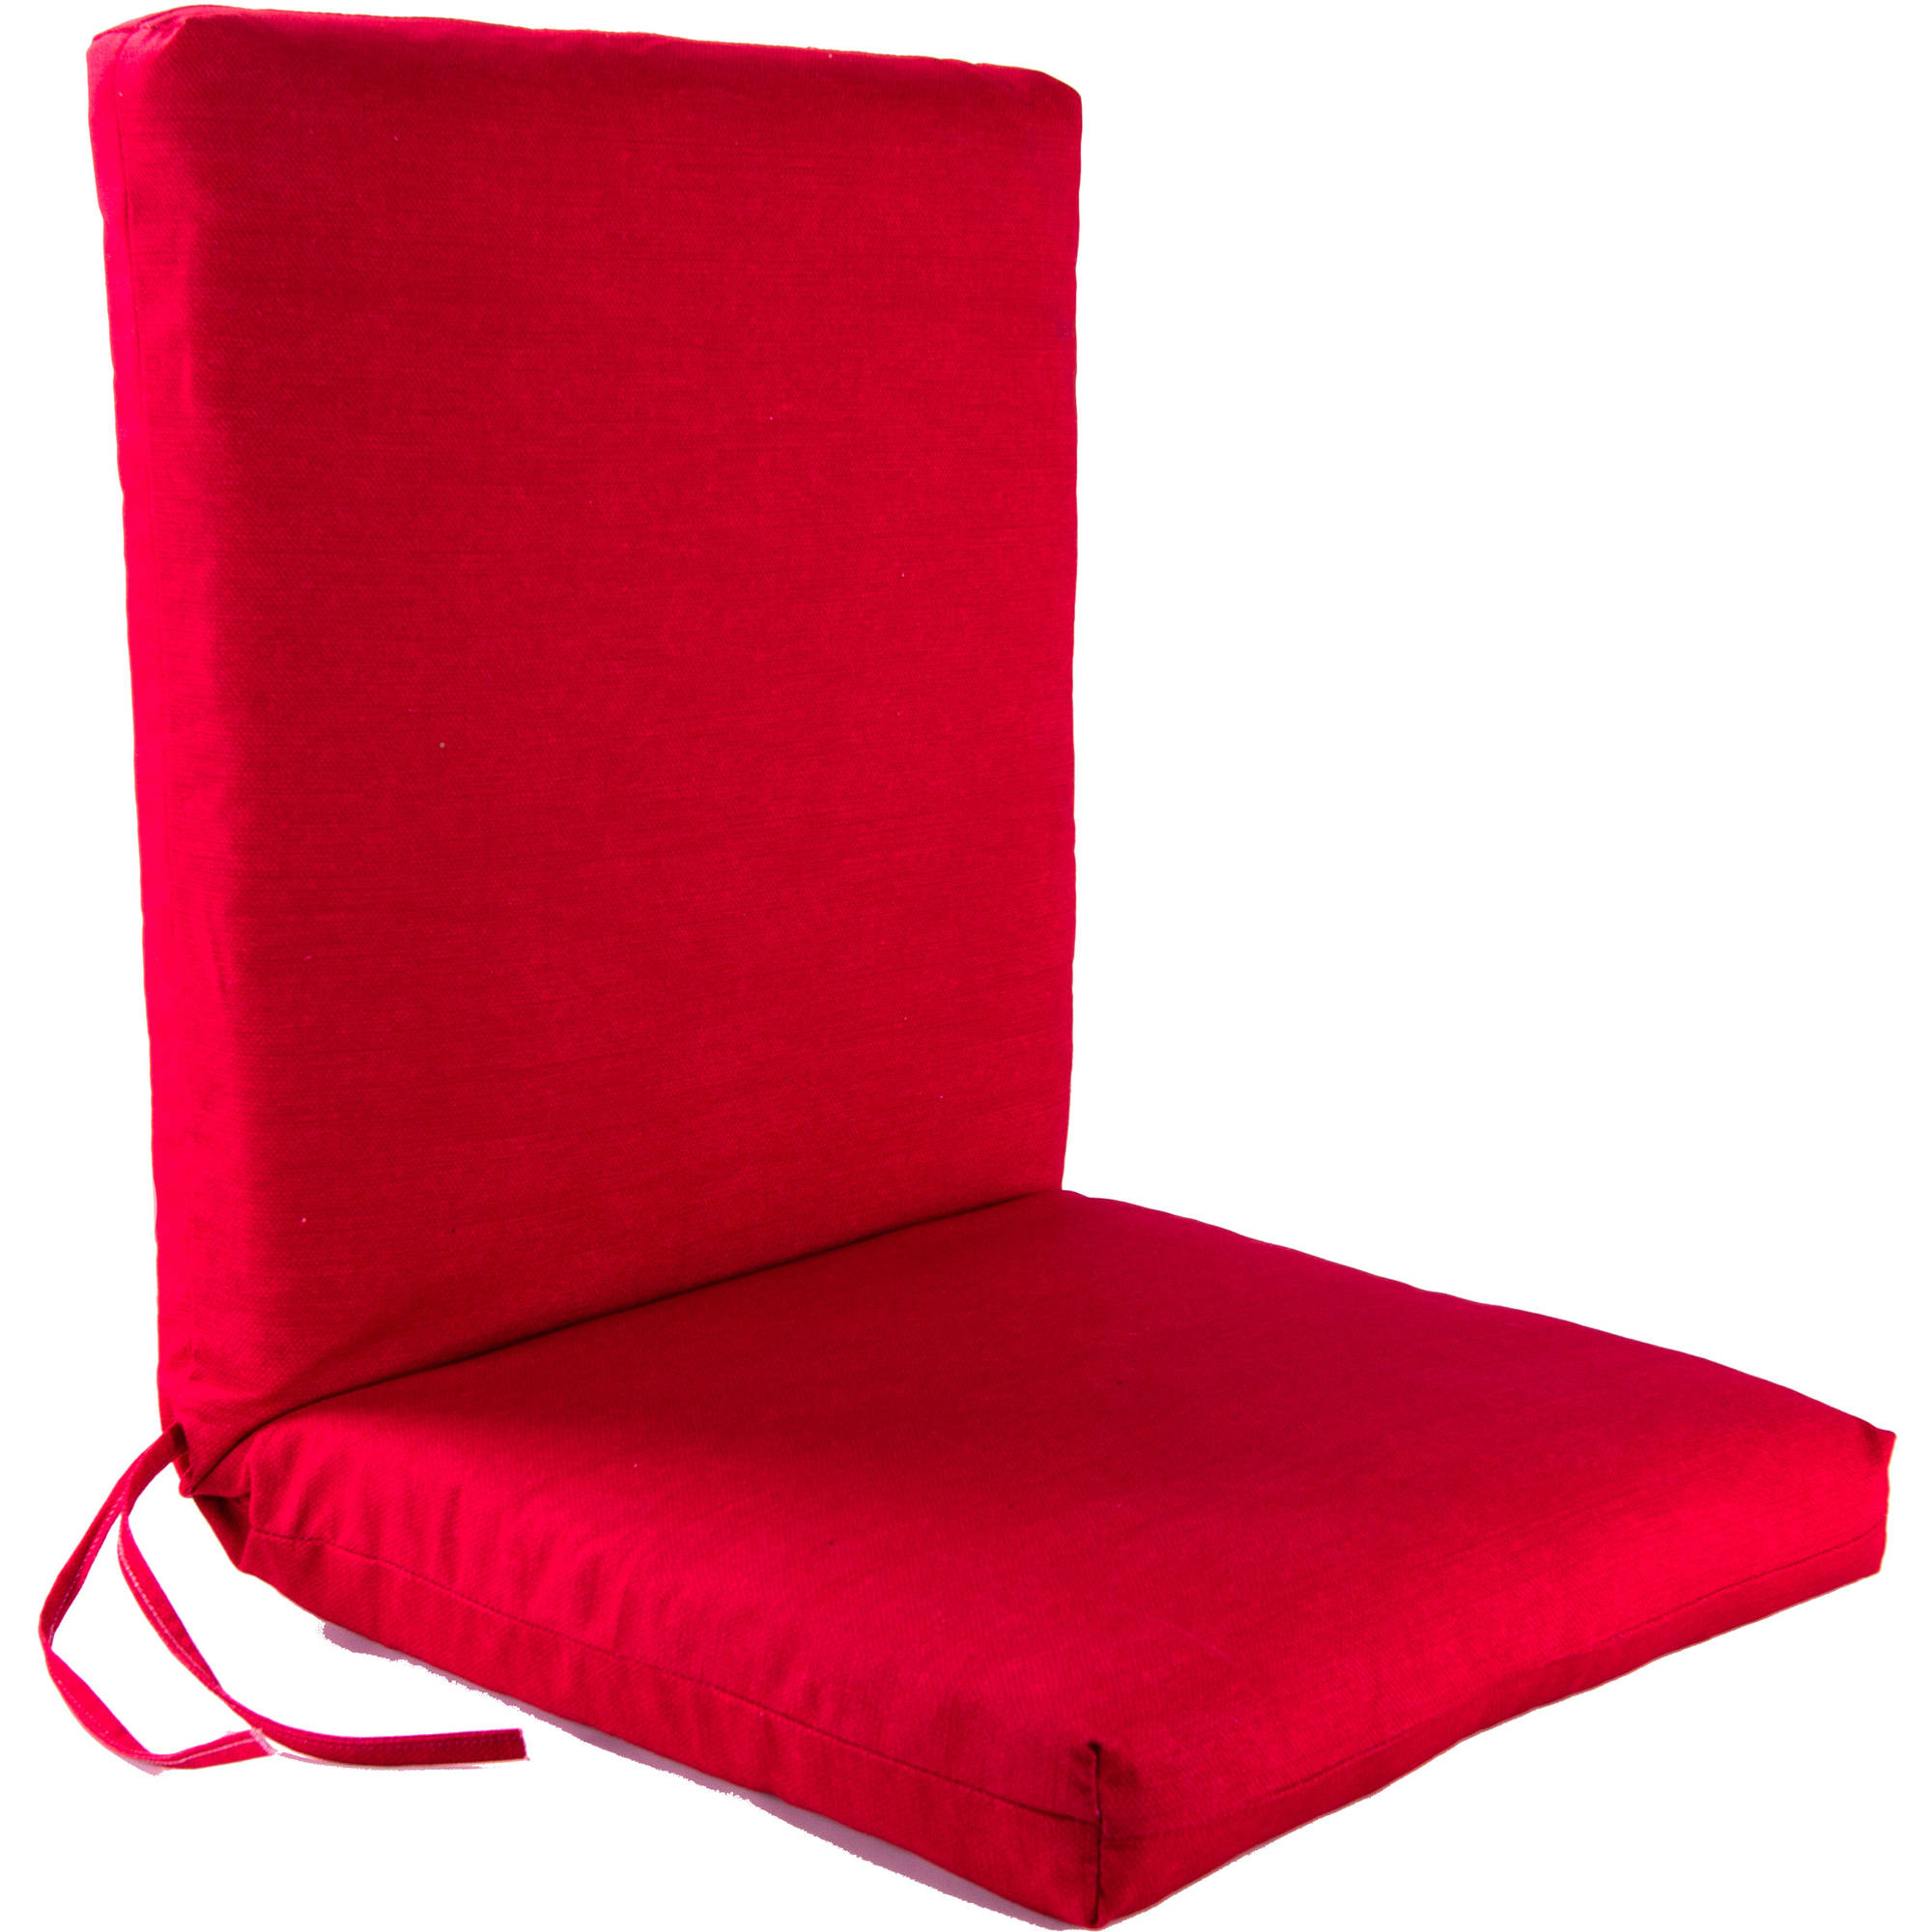 Jordan Manufacturing Outdoor Patio 1 Piece Chair Cushion, Melba Red